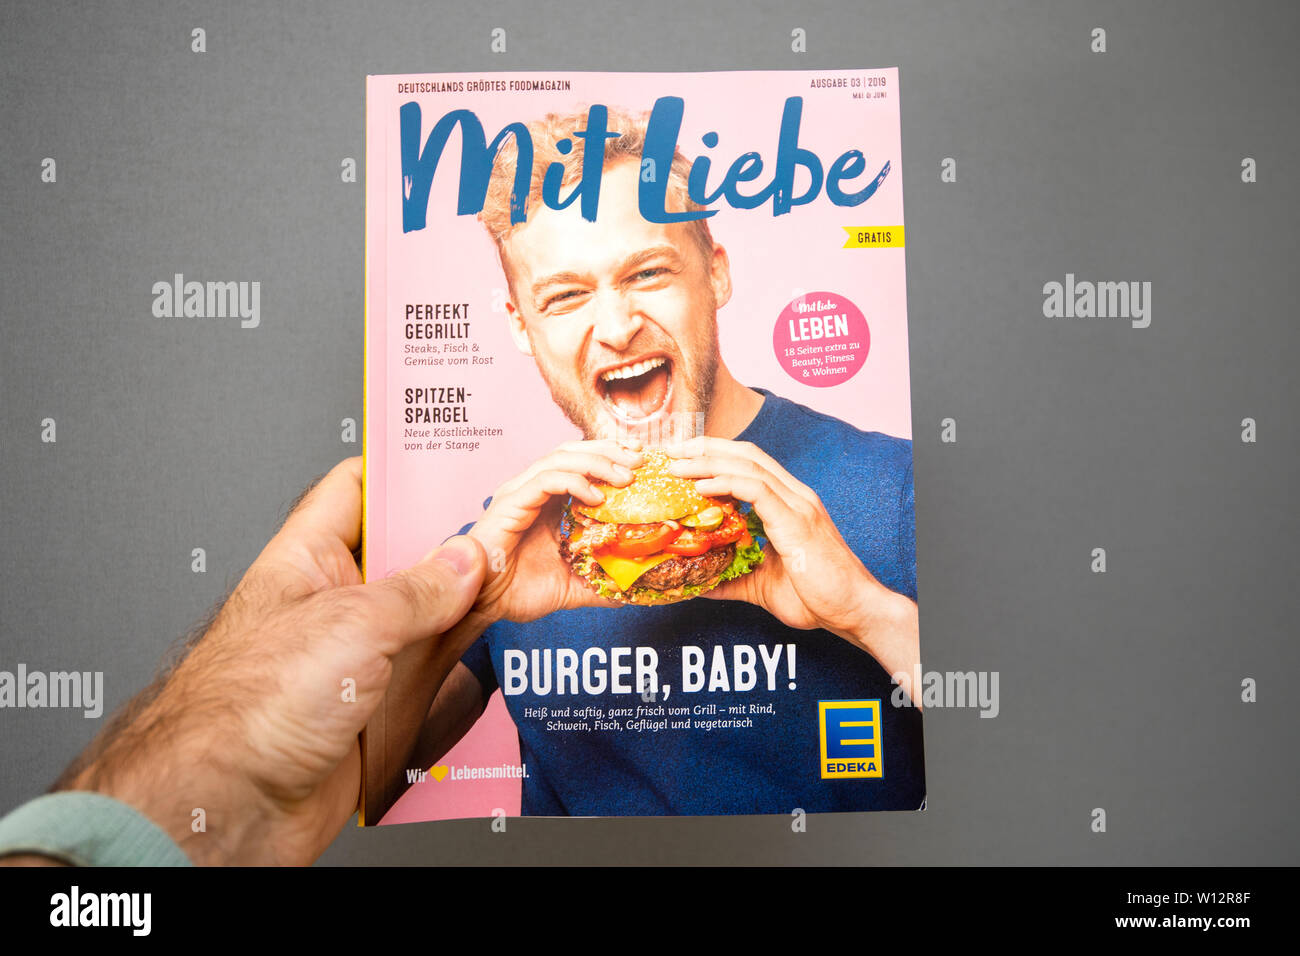 Paris, France - May 19, 2019: Man hand holding Mit Liebe magazine published by Edeka Supermarket featuring happy man eating a delicious hamburger - Stock Image